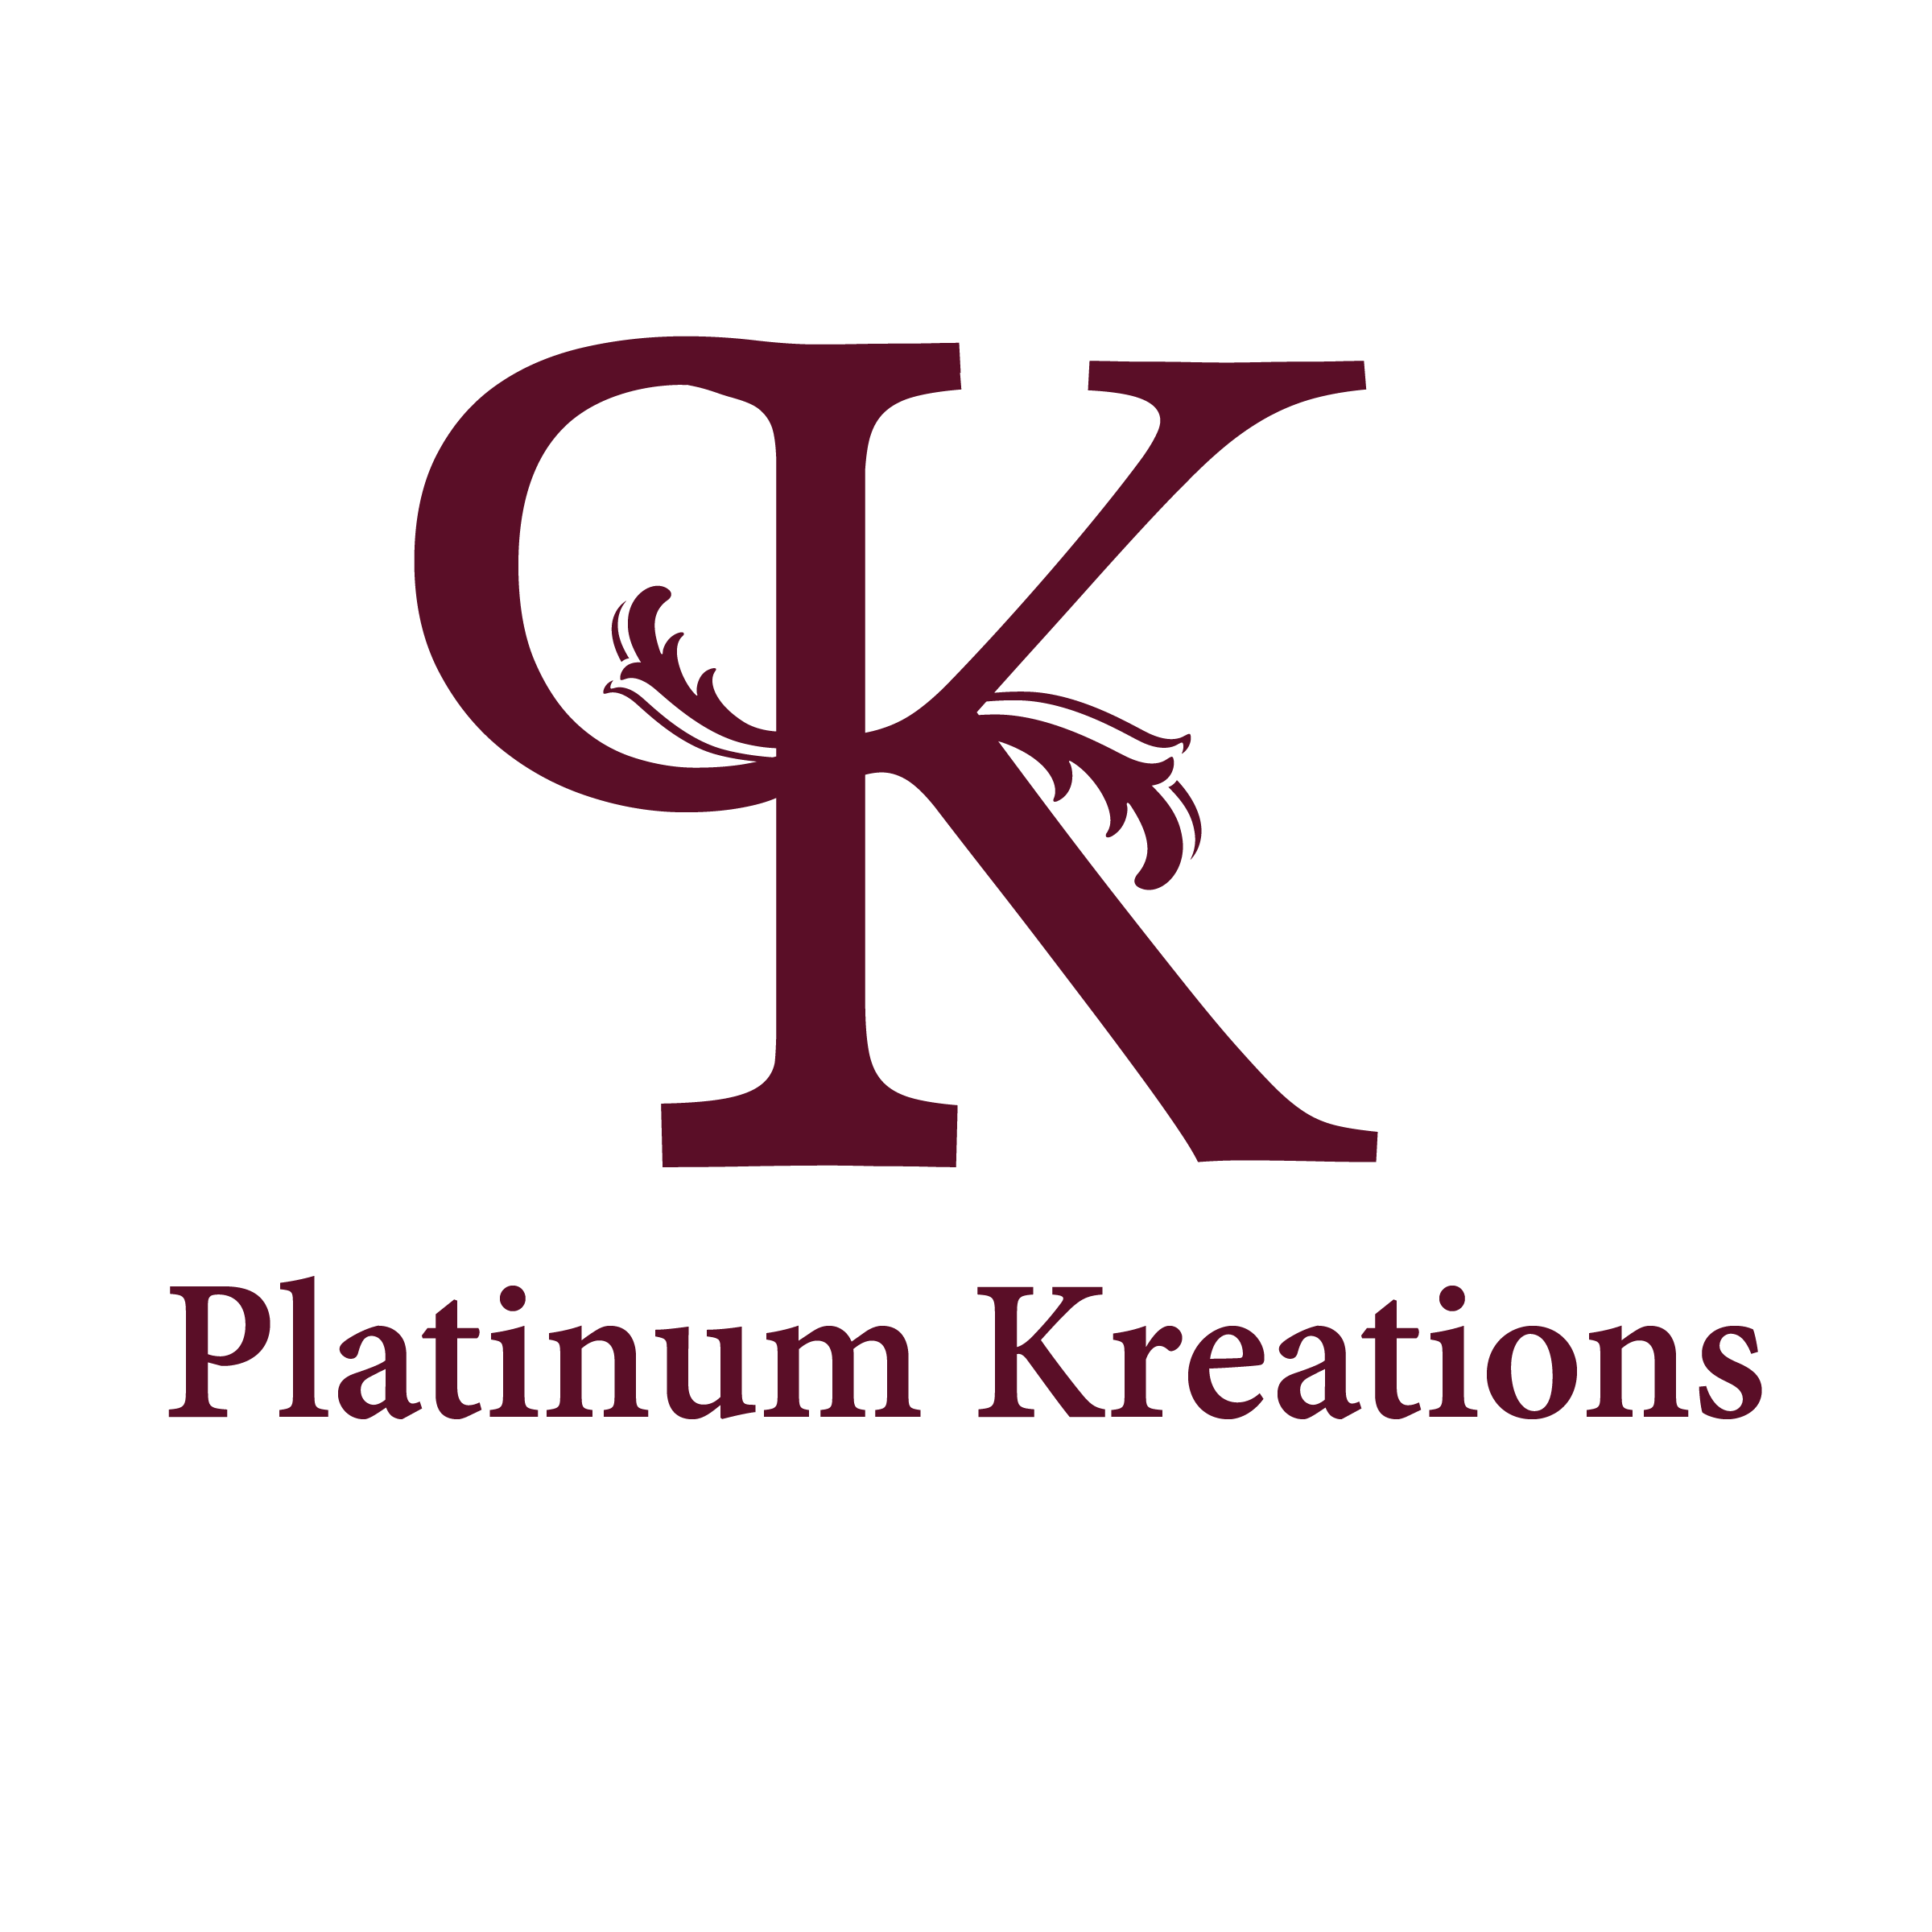 Welcome to Platinum Kreations, LLC